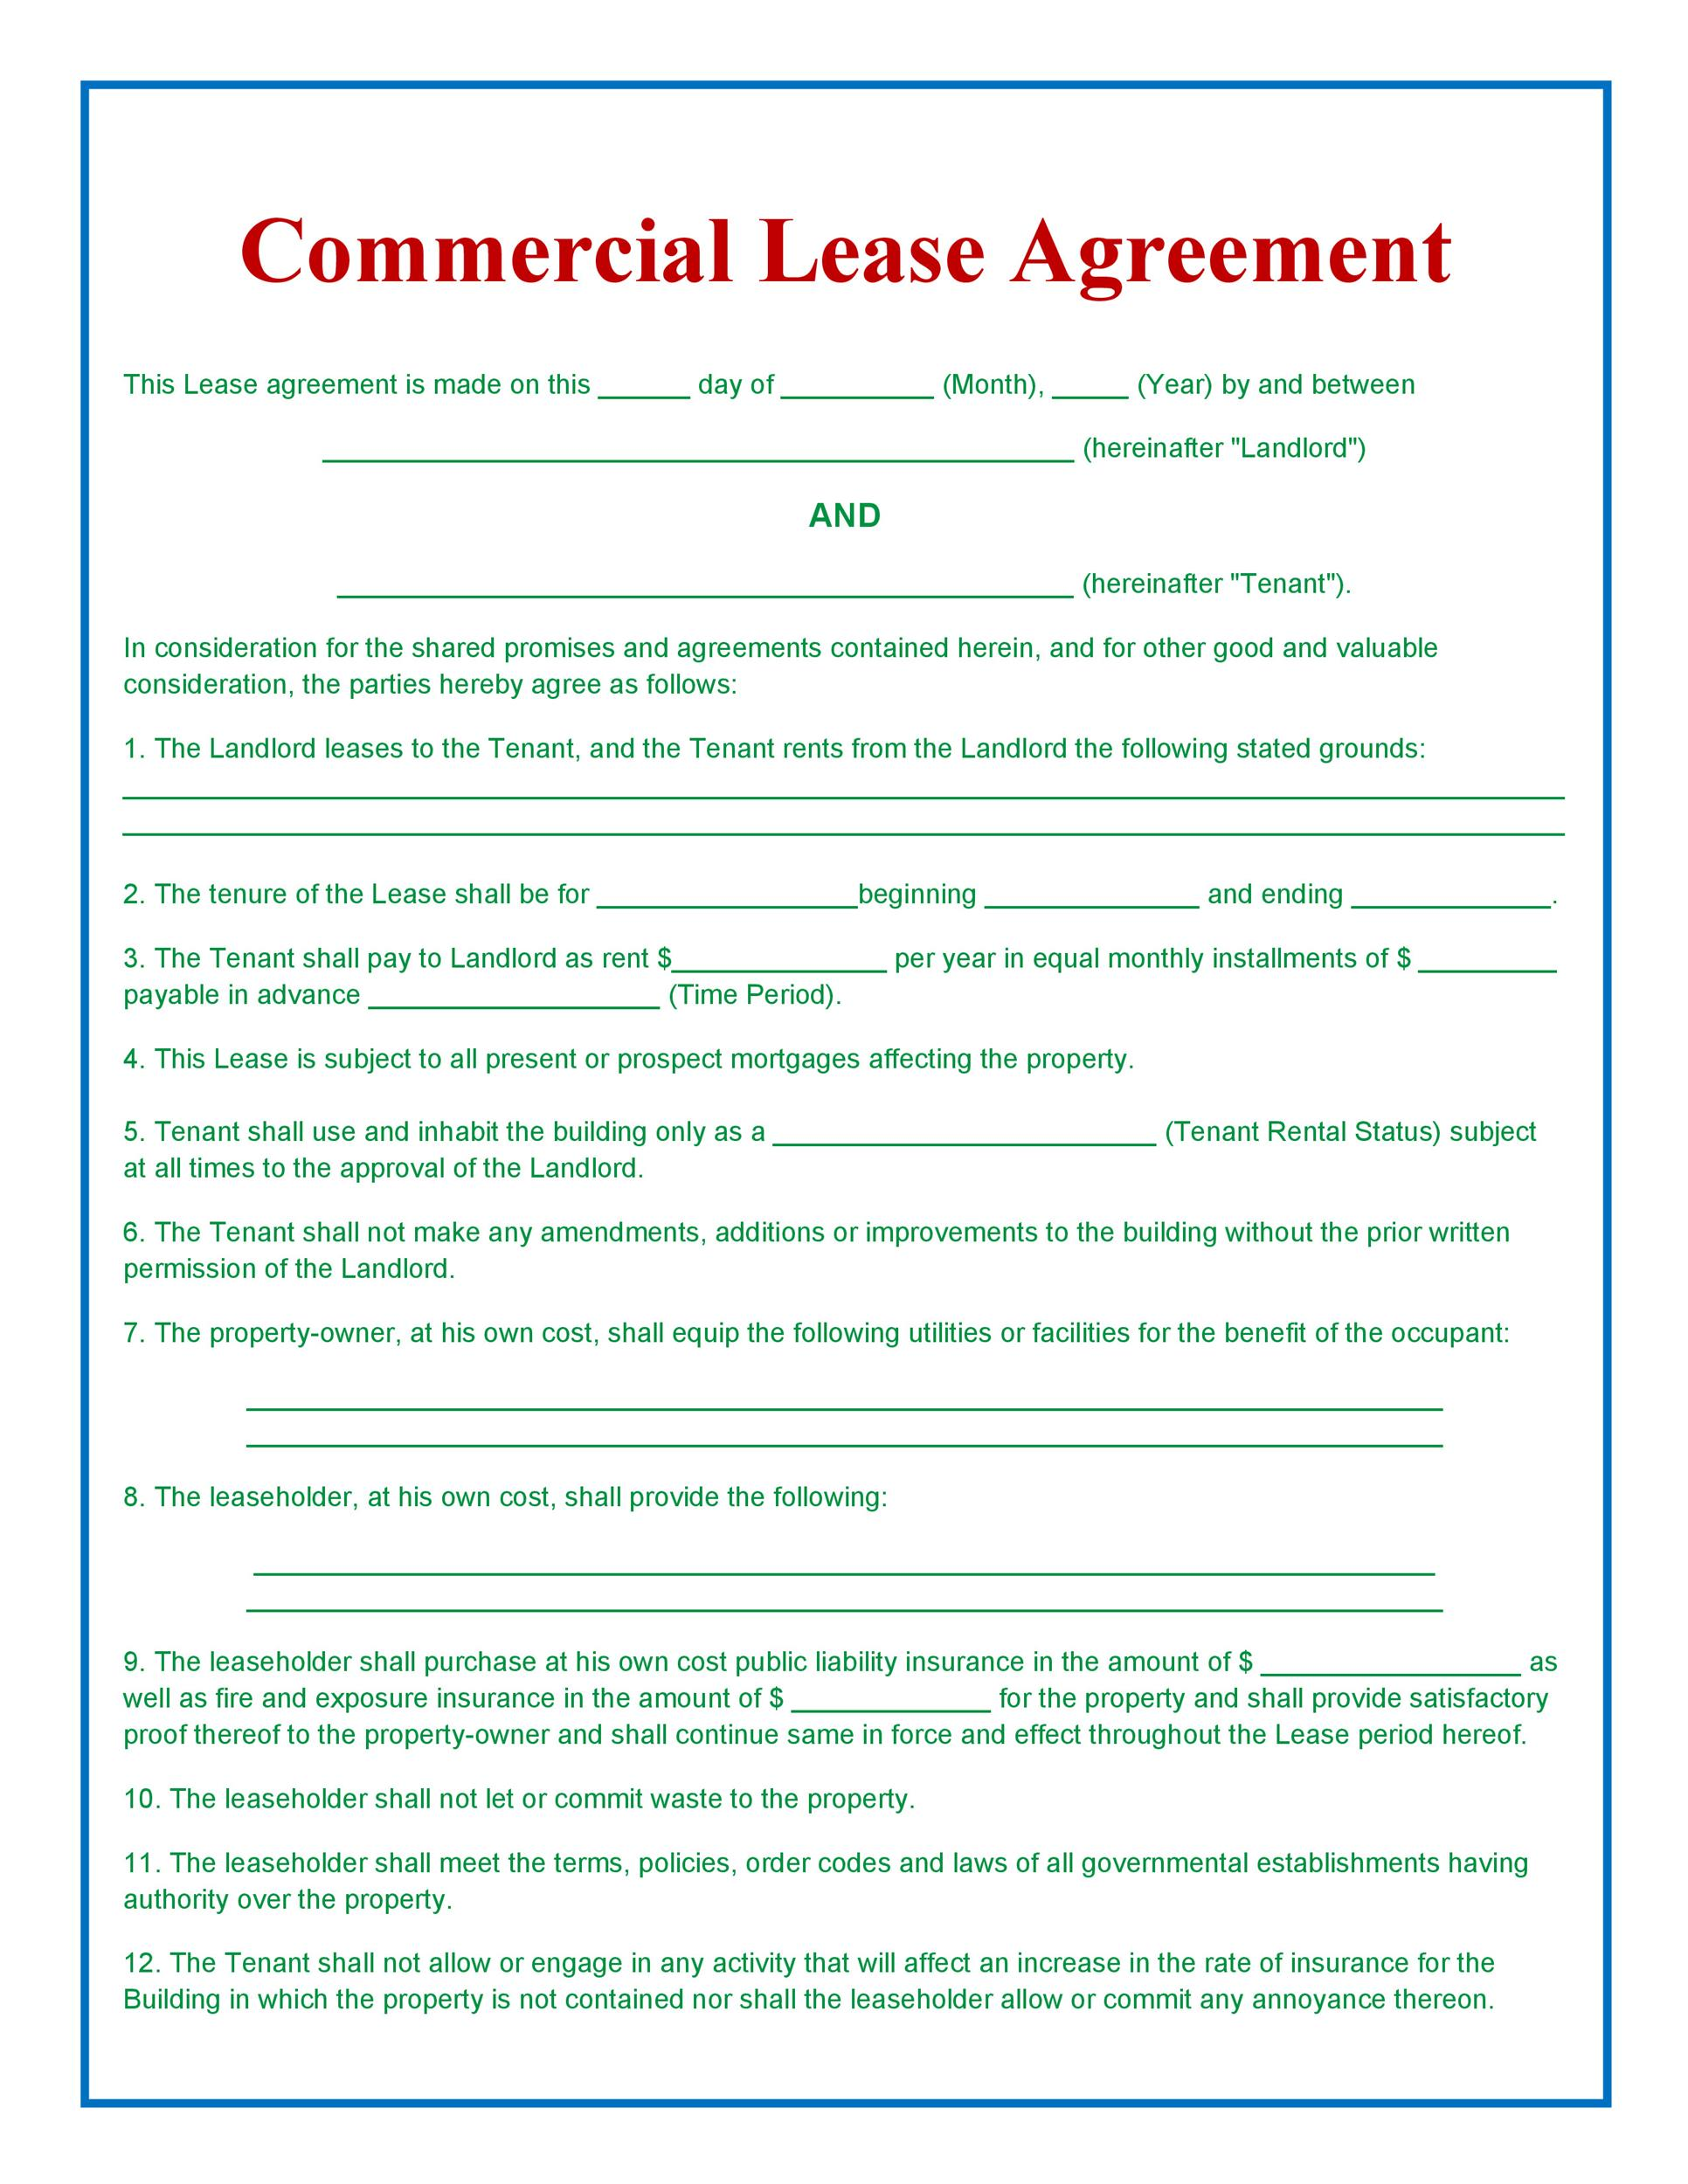 Business Lease Agreement Sample Lease Or Rental Agreement 10 Best – Sample Commercial Lease Agreement